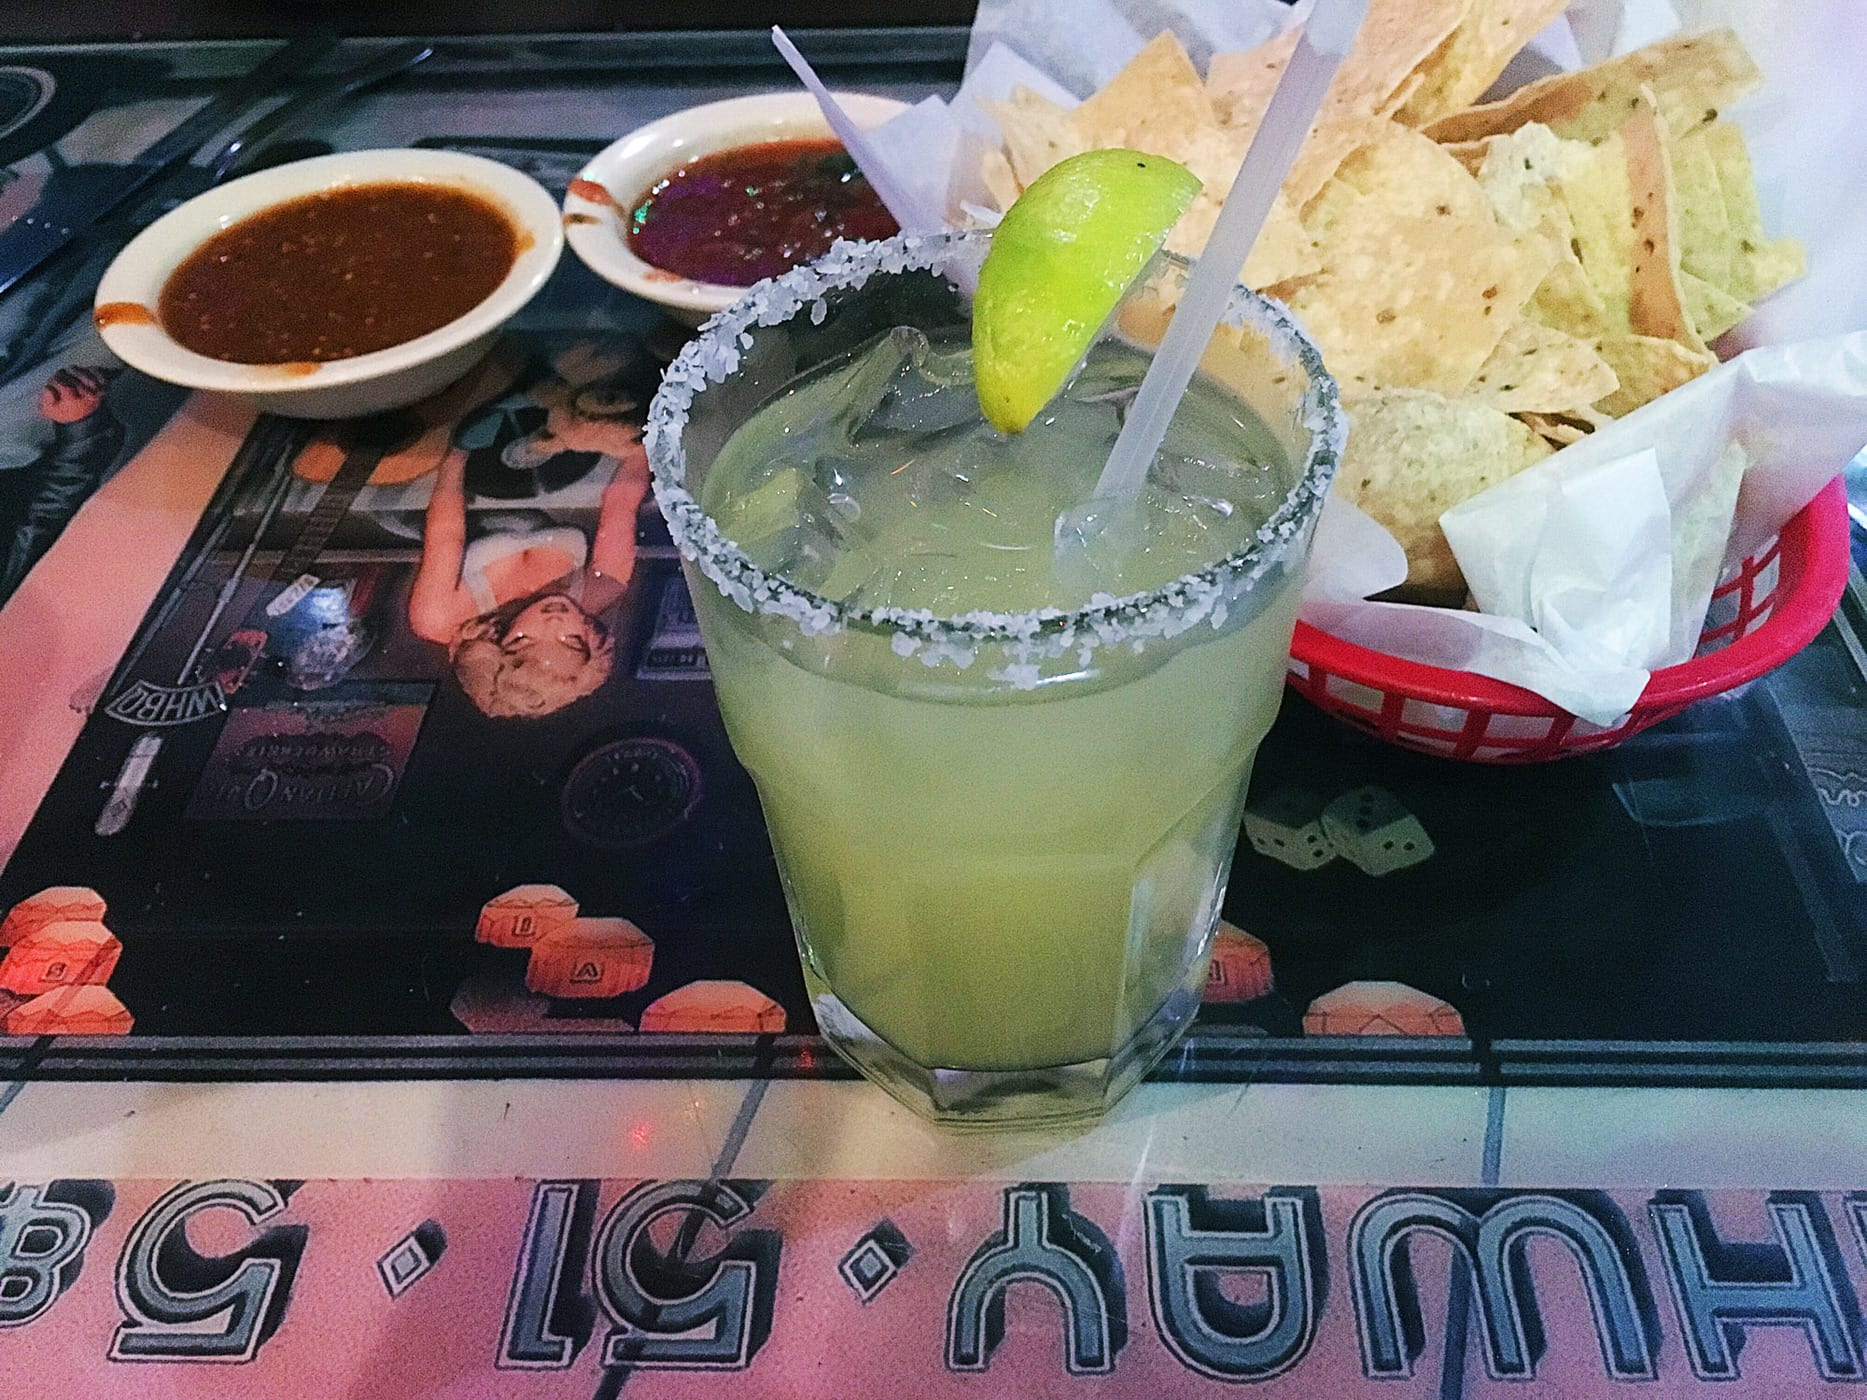 Margarita and chips and salsa at Polvos Mexican Restaurant in Austin, Texas.